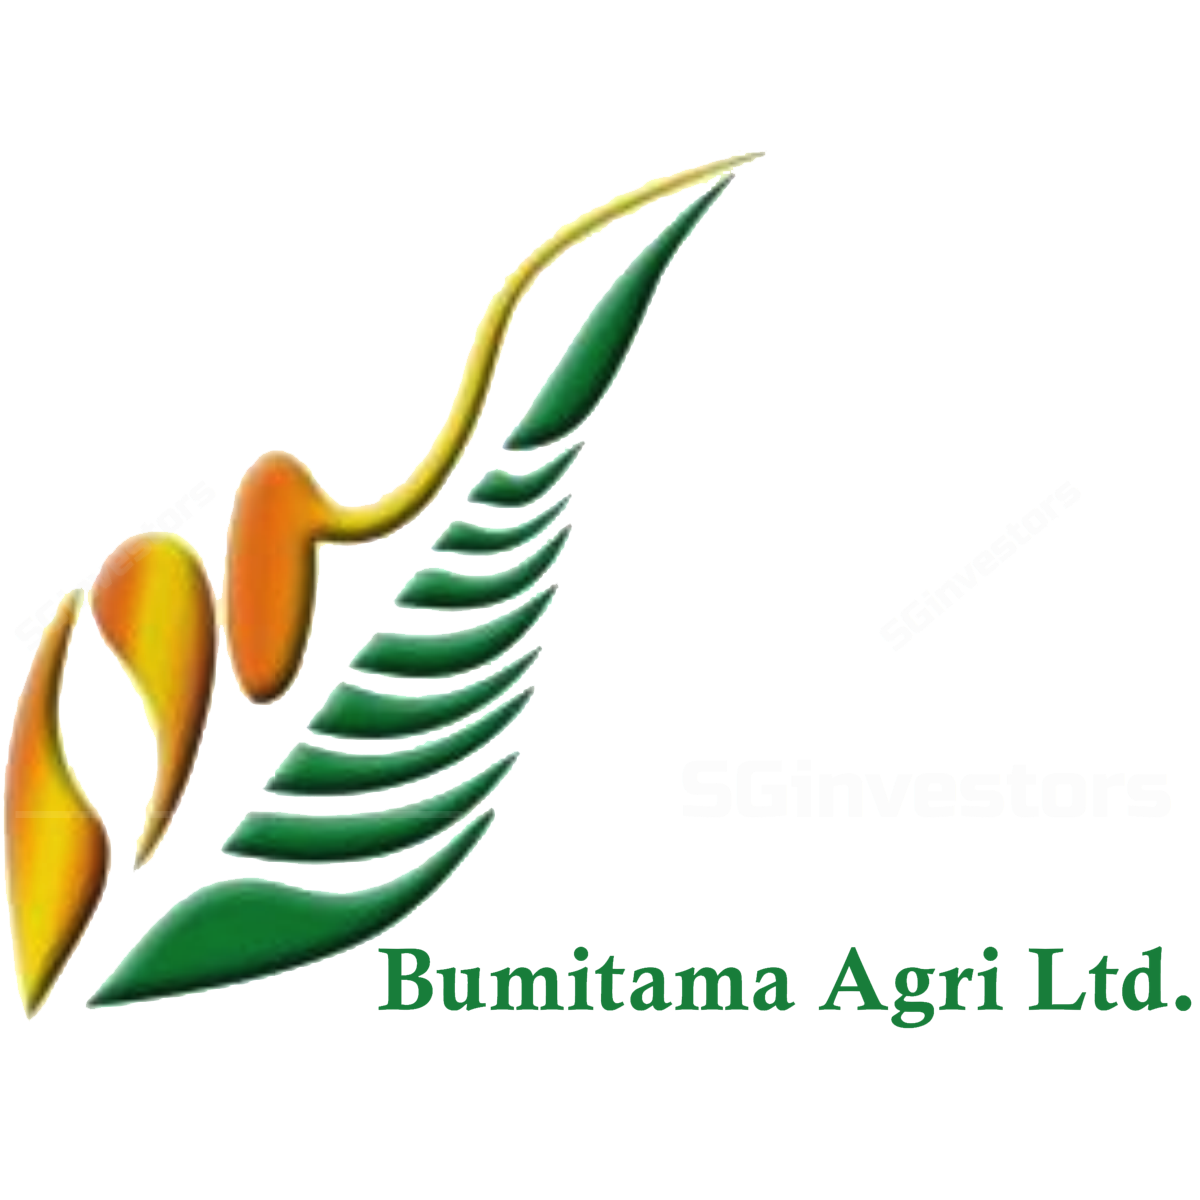 Bumitama Agri (BAL SP) - UOB Kay Hian 2017-02-27: 4Q16: Above Expectation, Strong Performance On Higher Palm Kernel Sales And ASP